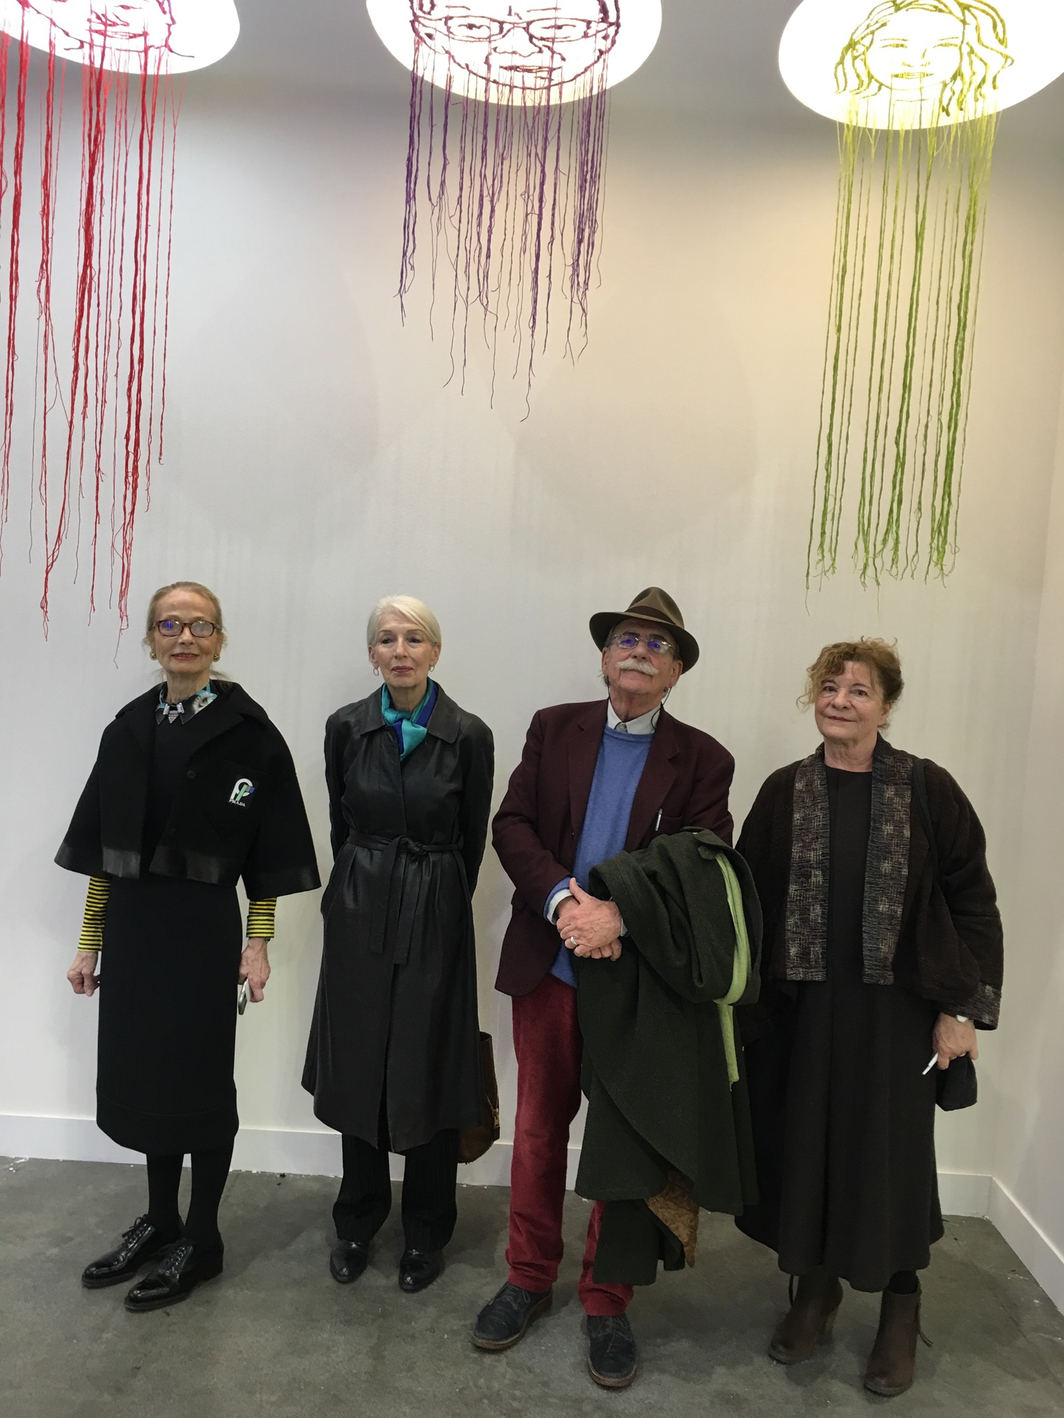 Gallerist Luisa Delle Piane with design historian and critic Cristina Morozzi, architect and artist Ugo la Pietra, and Aurelia La Pietra under a project by Campana Brothers.